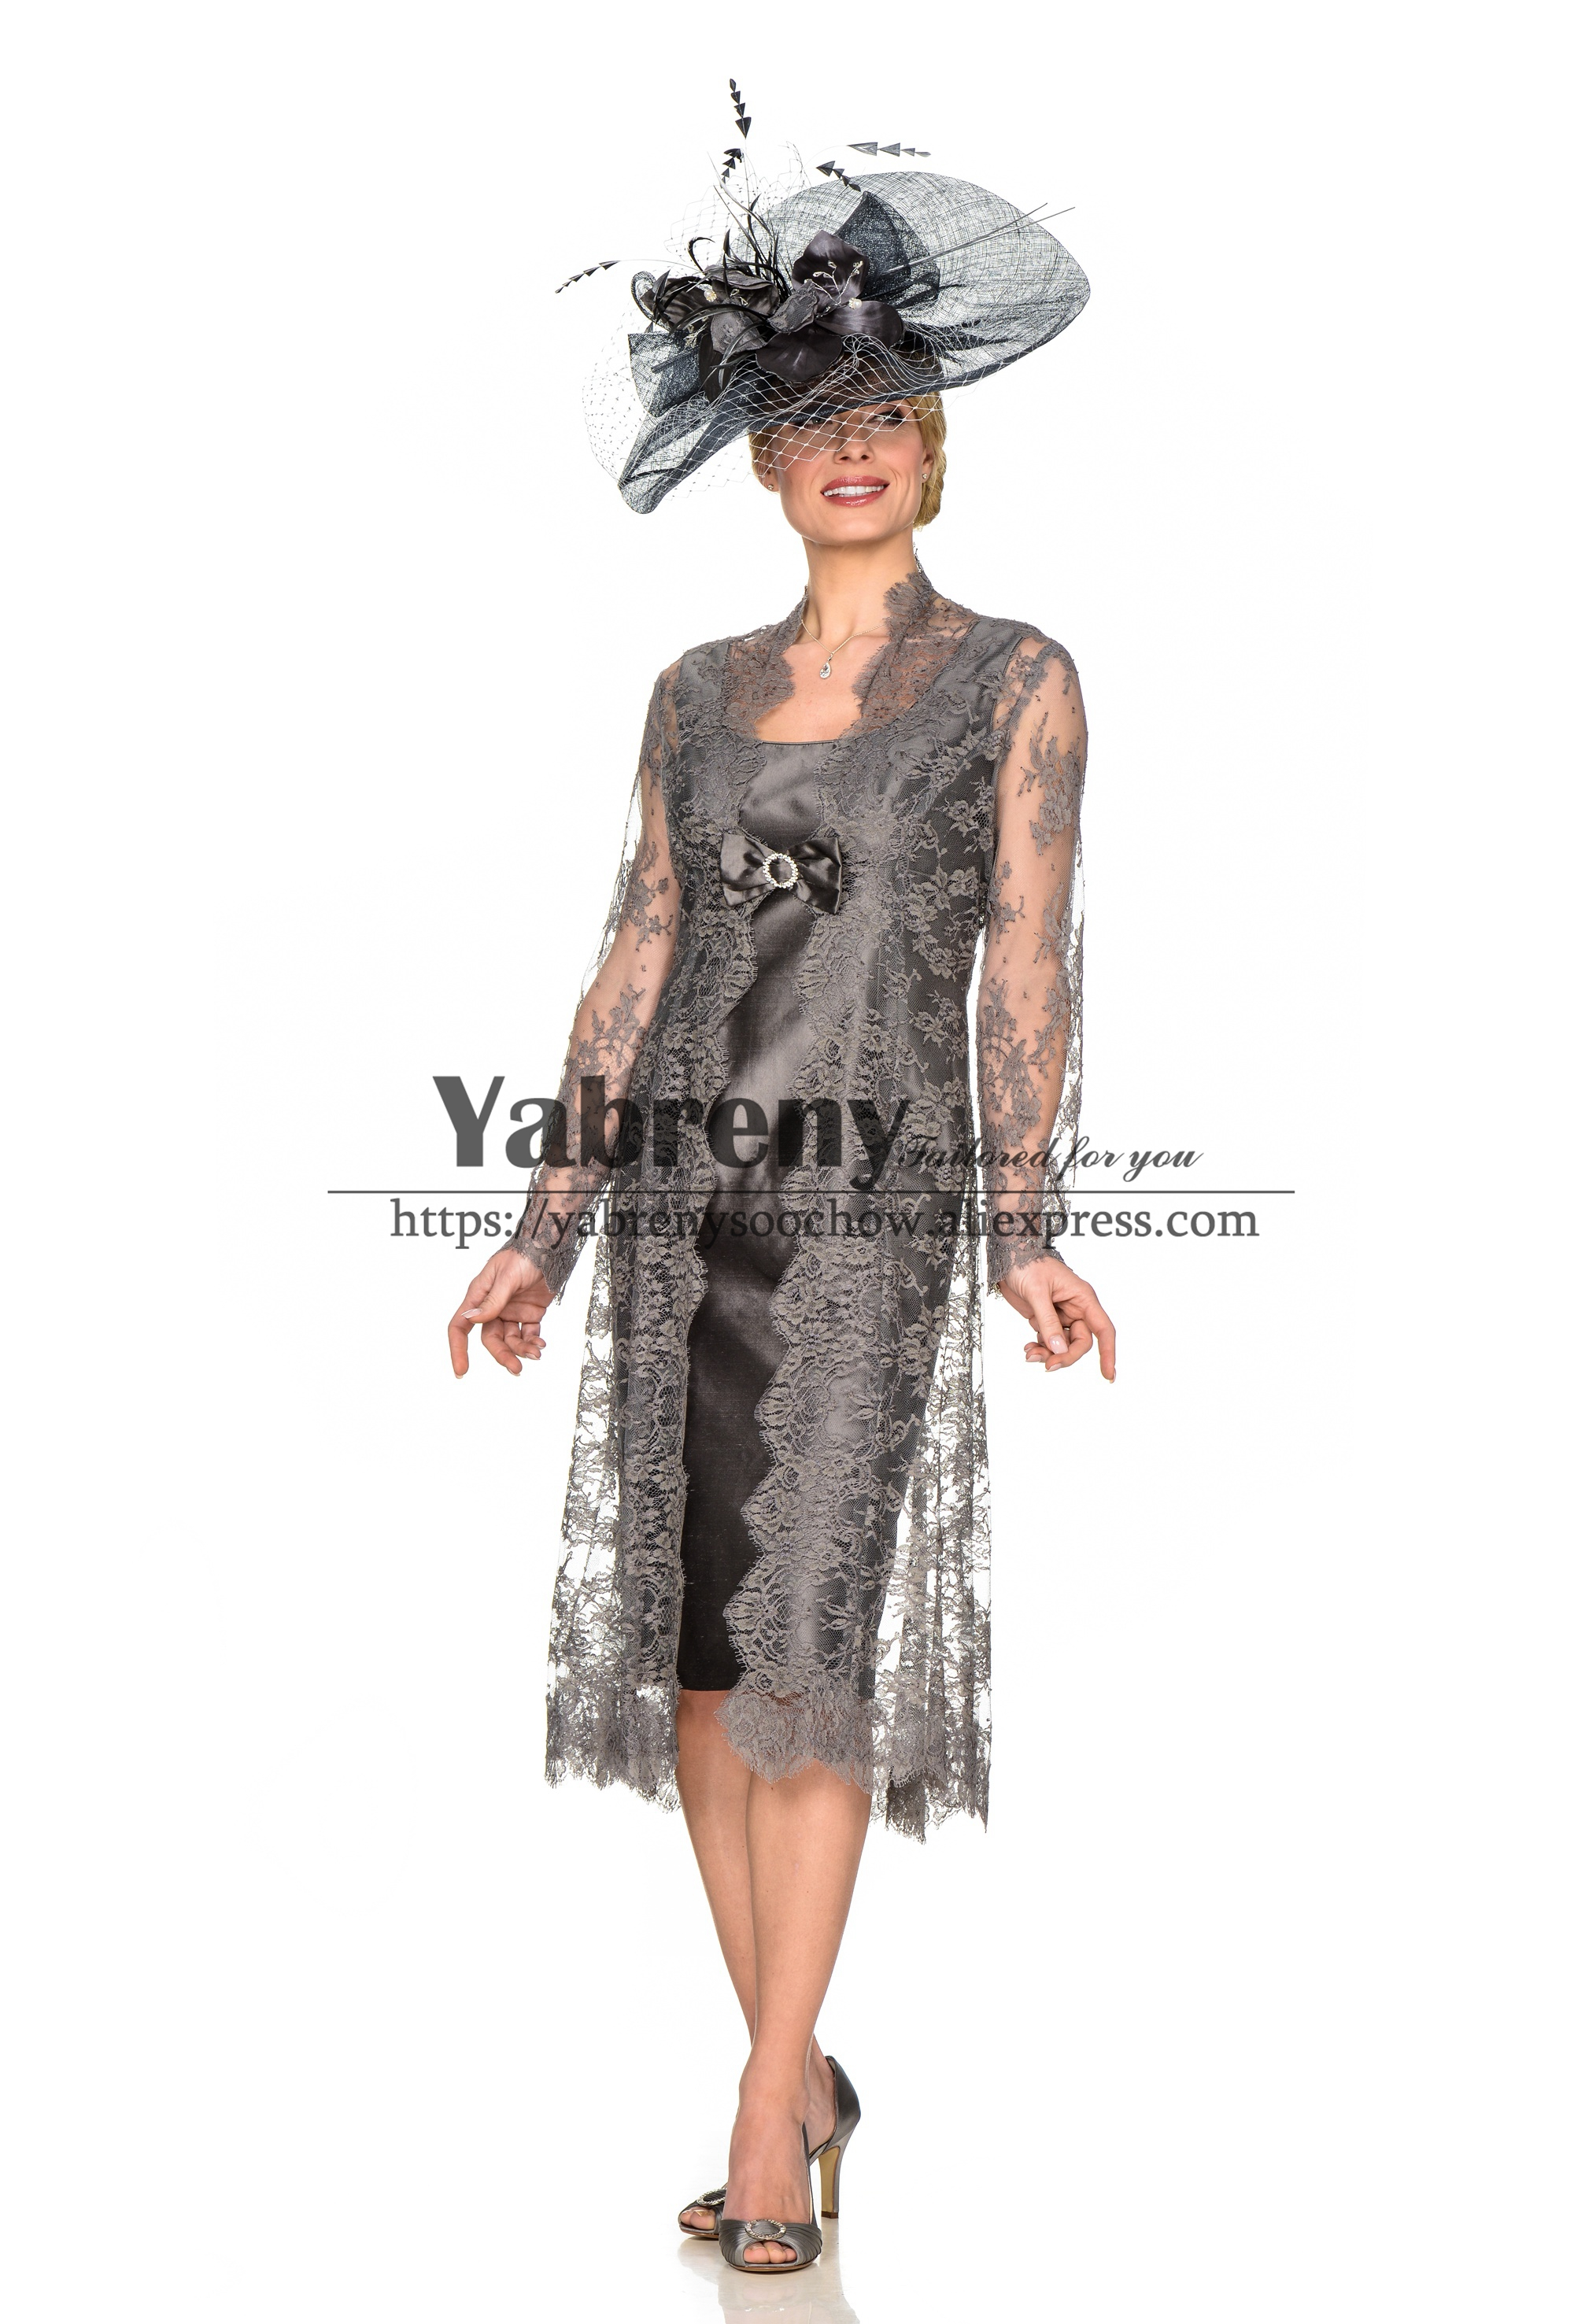 Elegant Gray Mother Of The Bride Dress Outfit With Jacket Knee-length